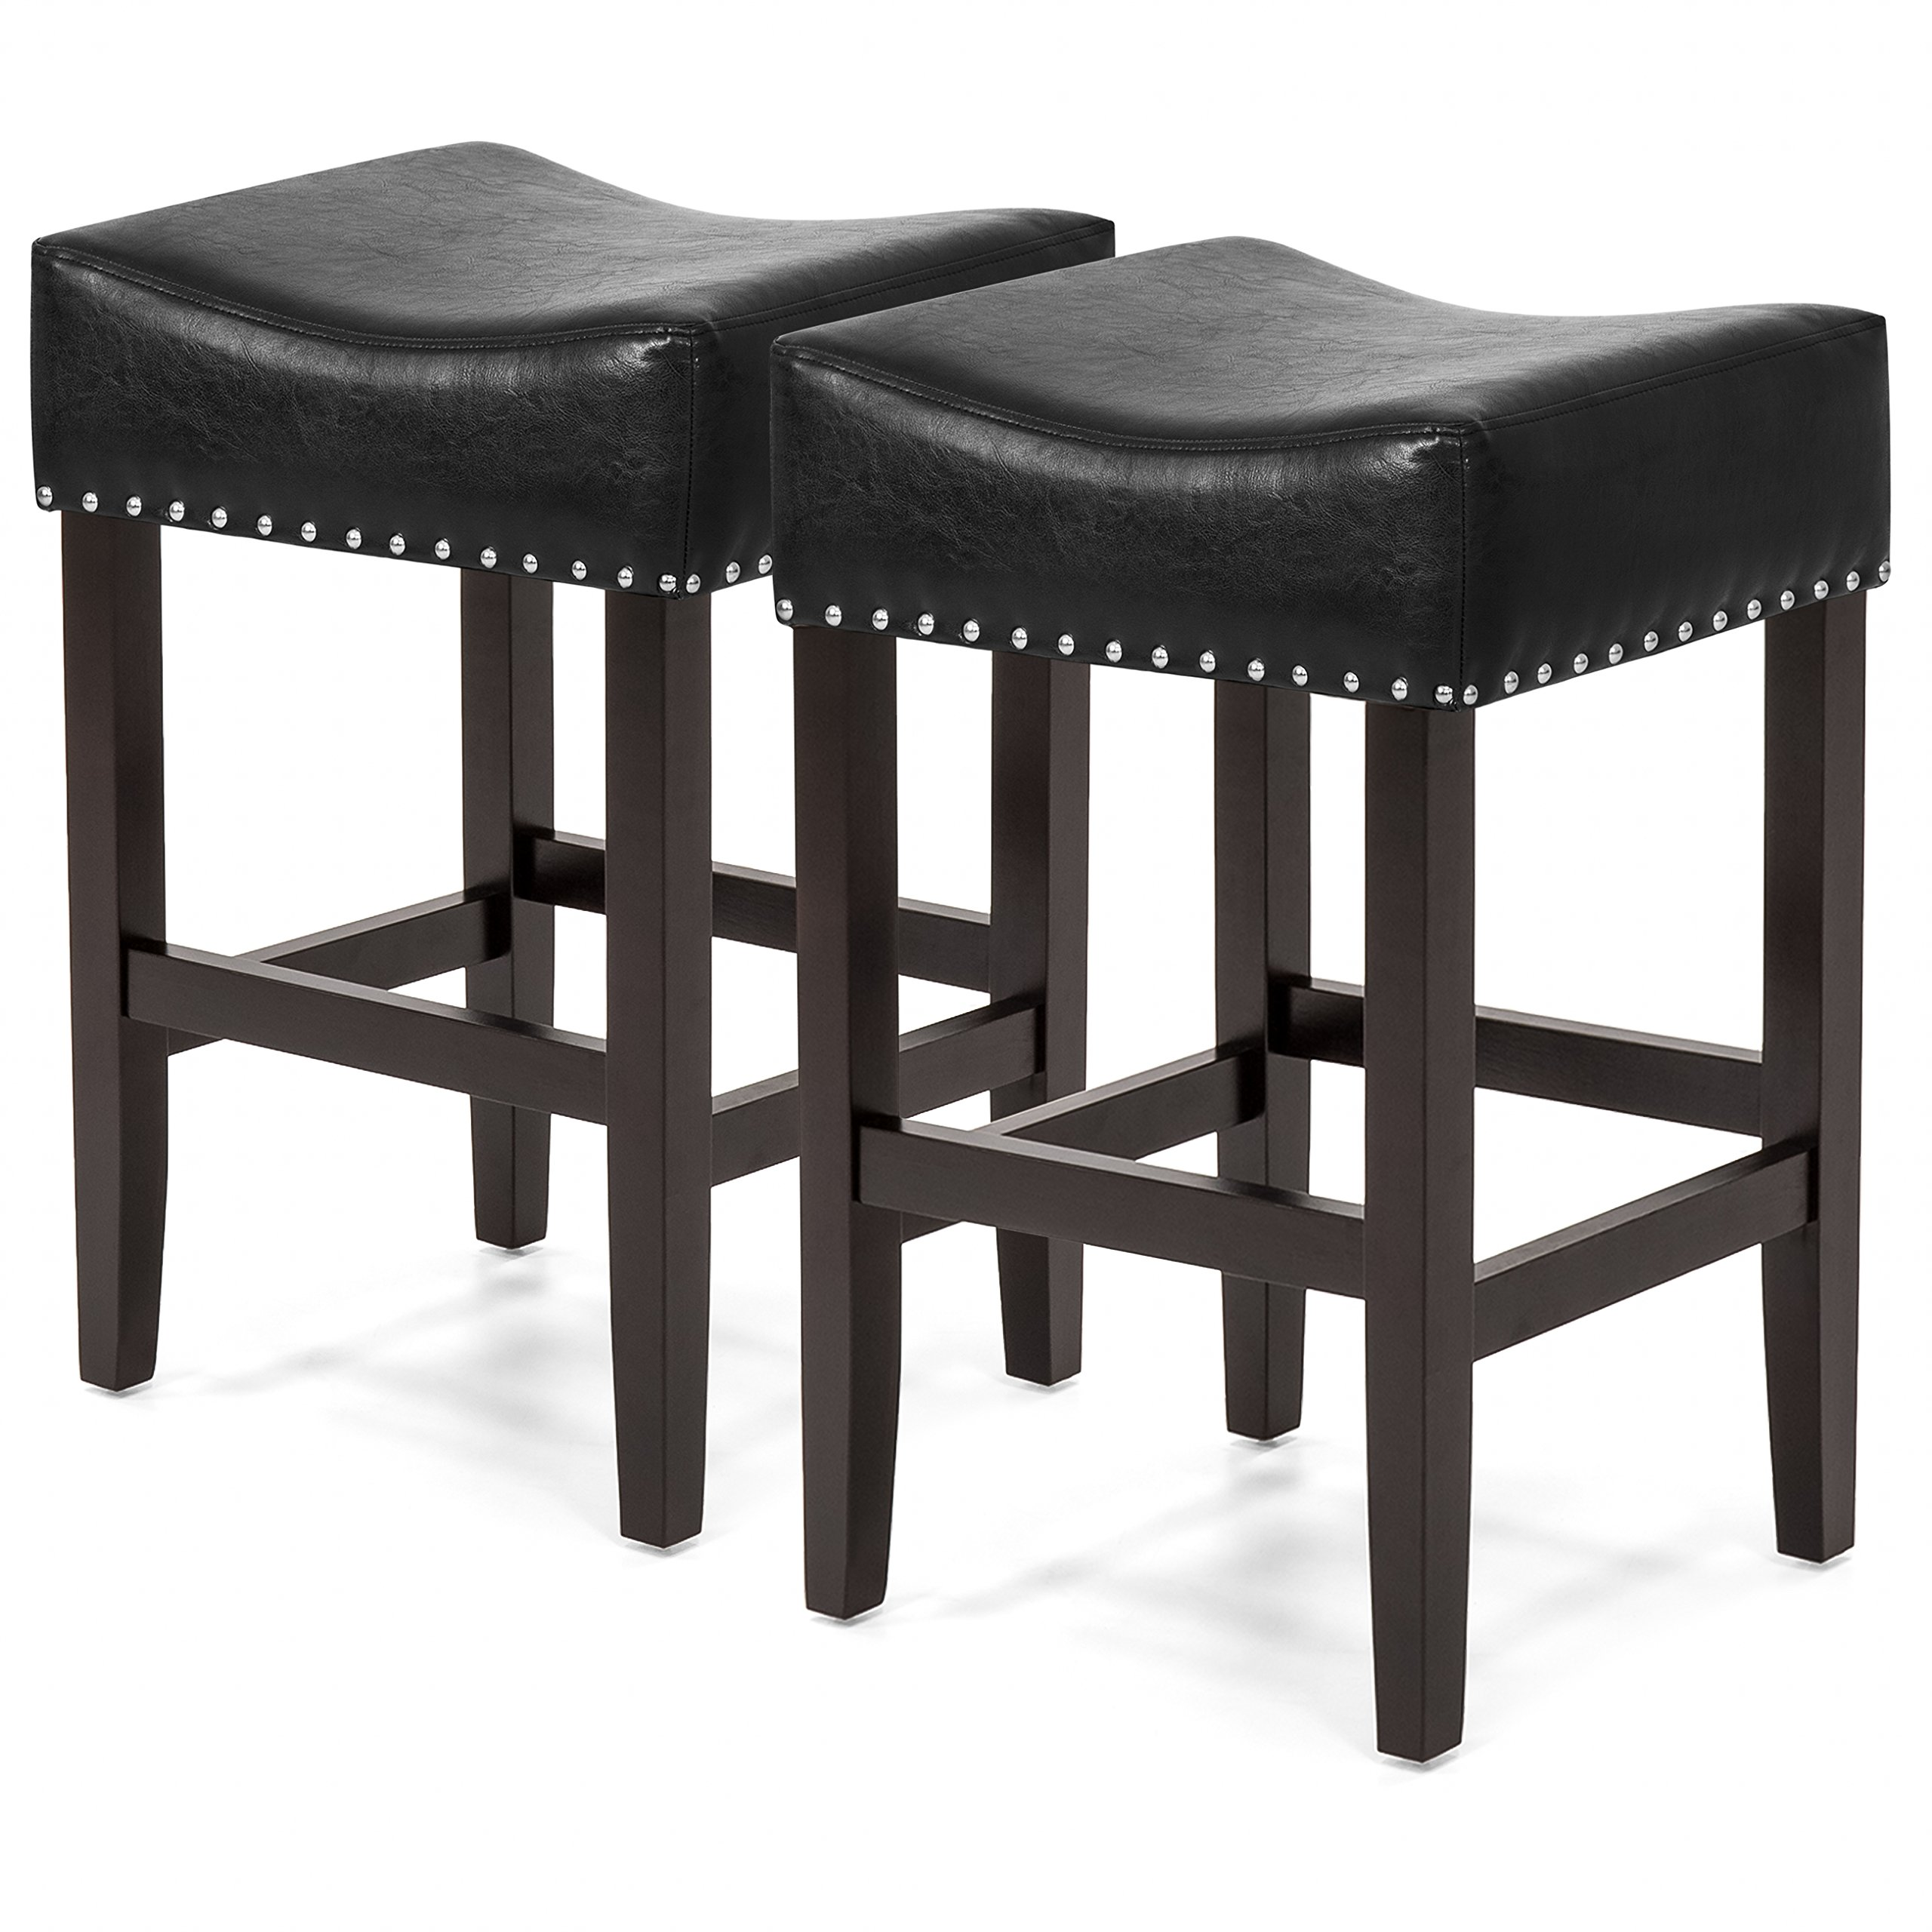 Best Choice Products Set of 2 Backless Faux Leather Upholstered 26in Counter Stools w/ Silver Nailhead Trim - Black